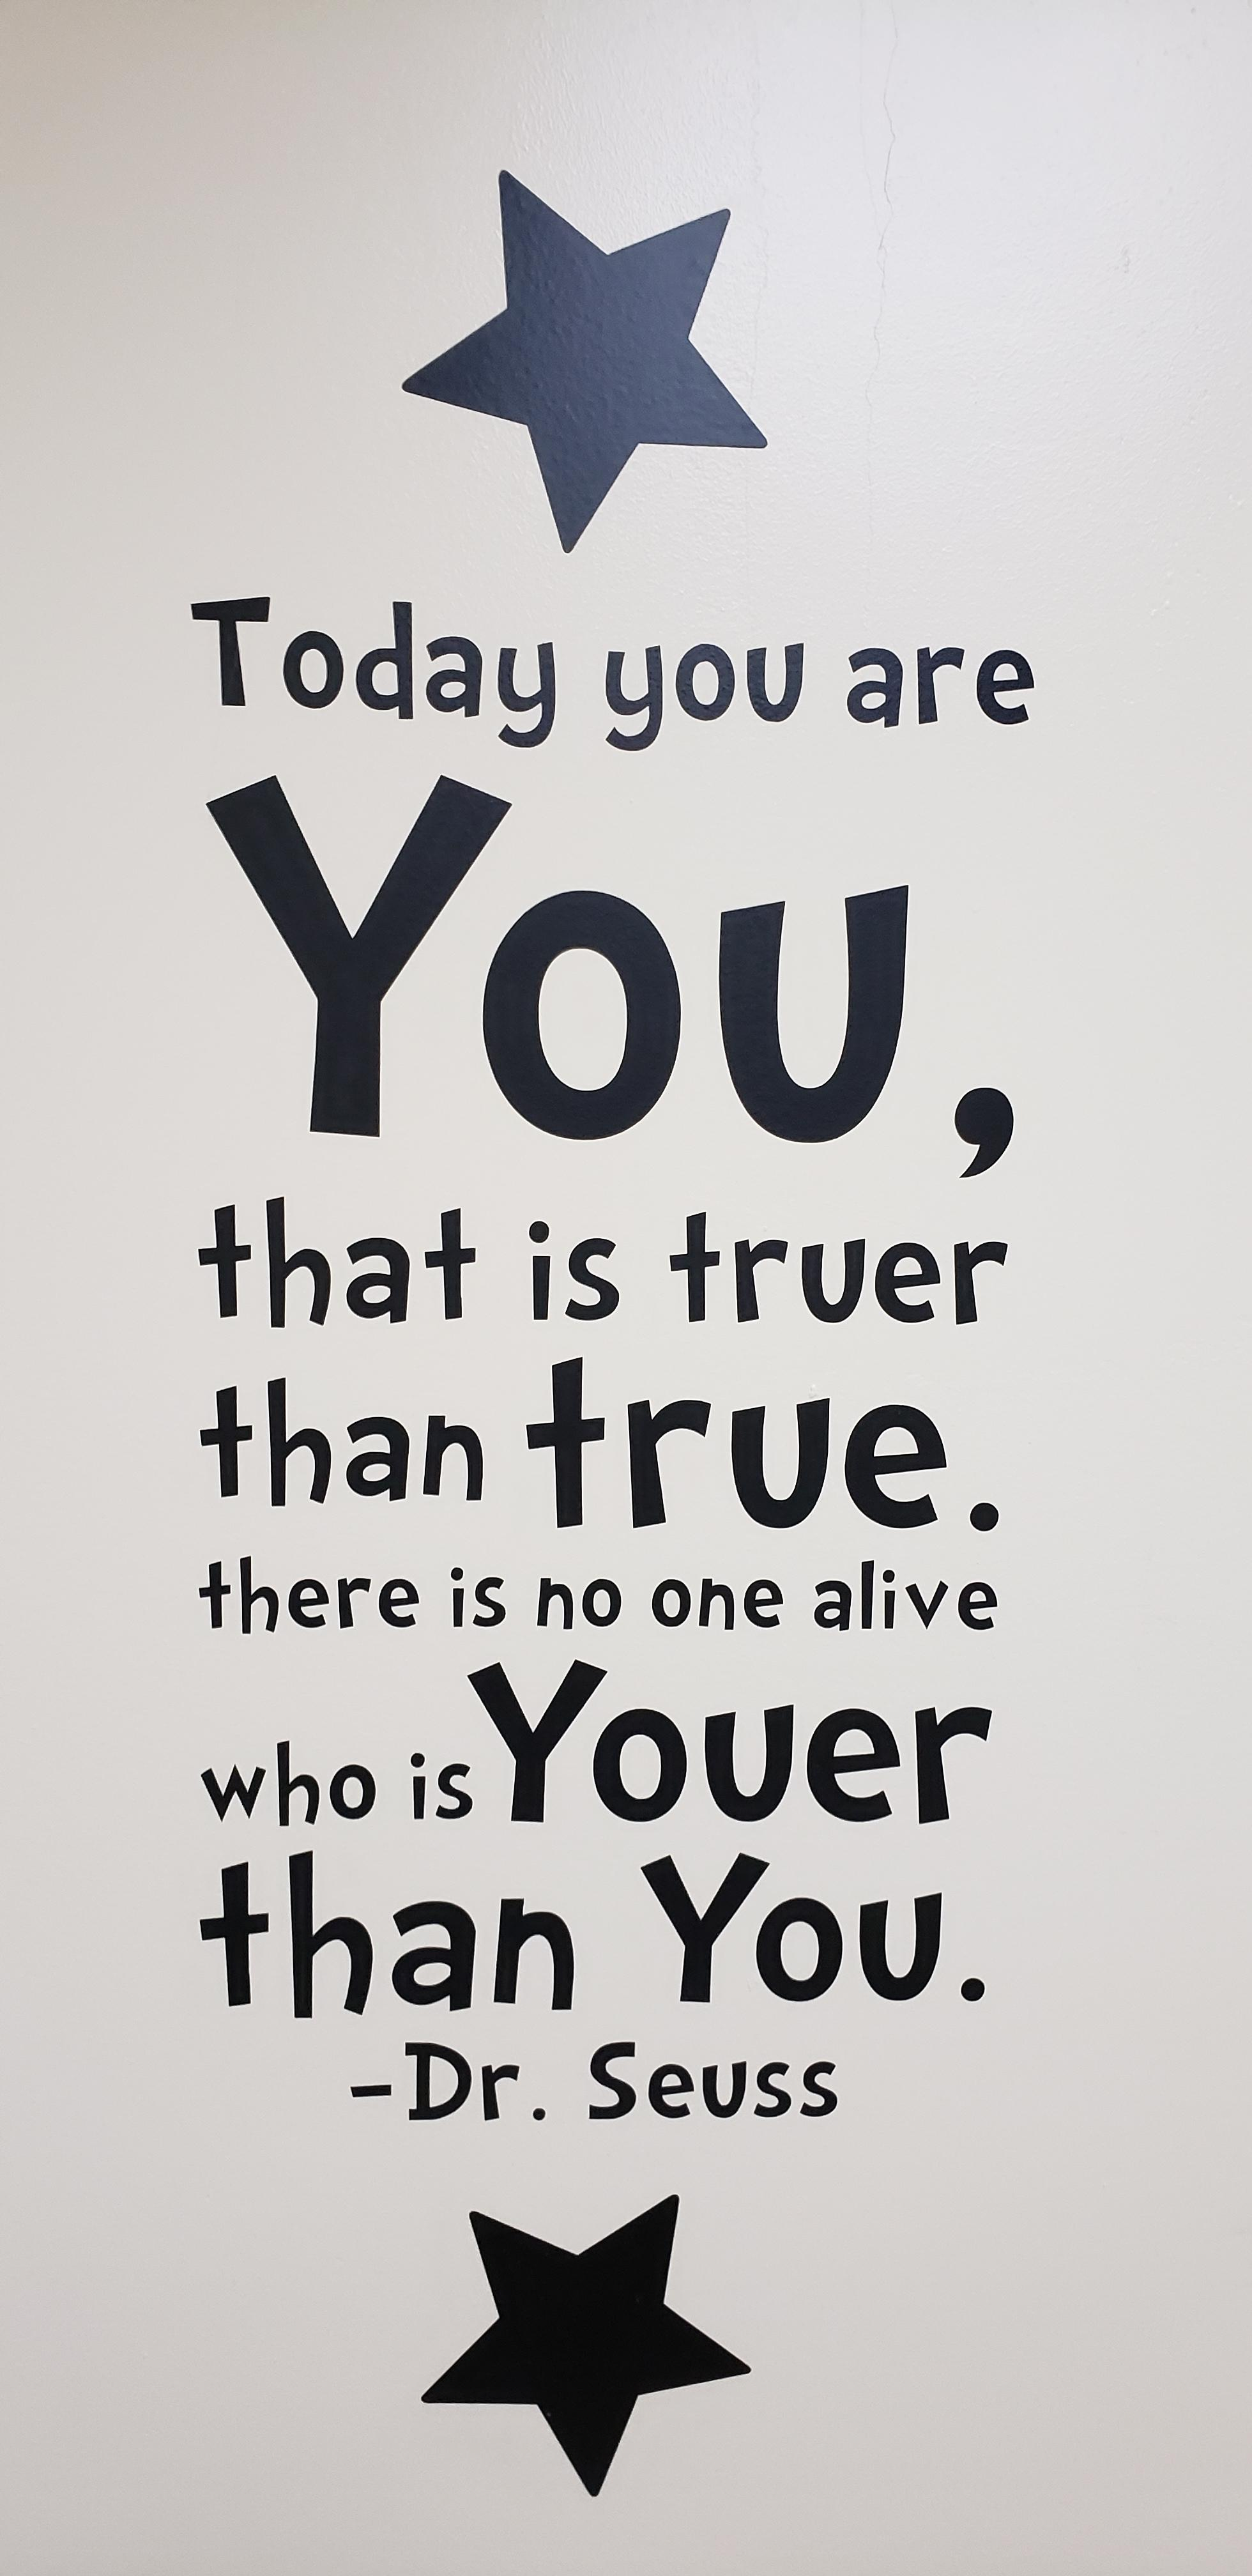 Dr. Seuss reminding us that we are all unique and special in our uniqueness – there is no one who is you-er than you (4032×1960)